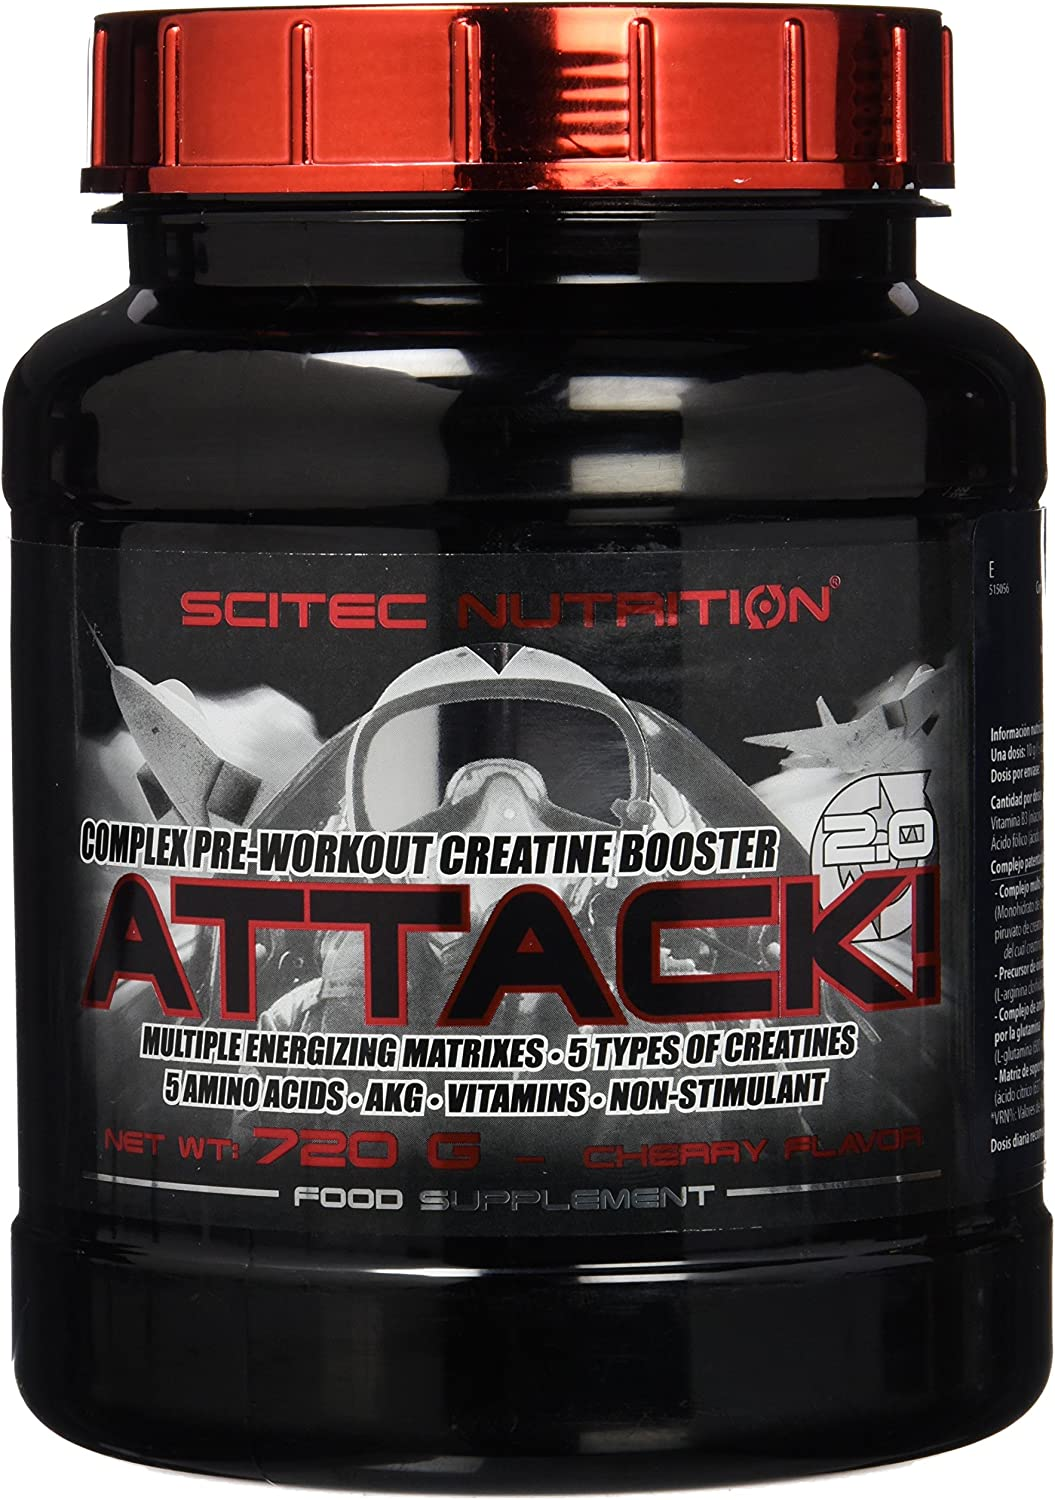 Attack 2.0-1.587 lbs - Cherry nutrition Scitec famous New Shipping Free Shipping